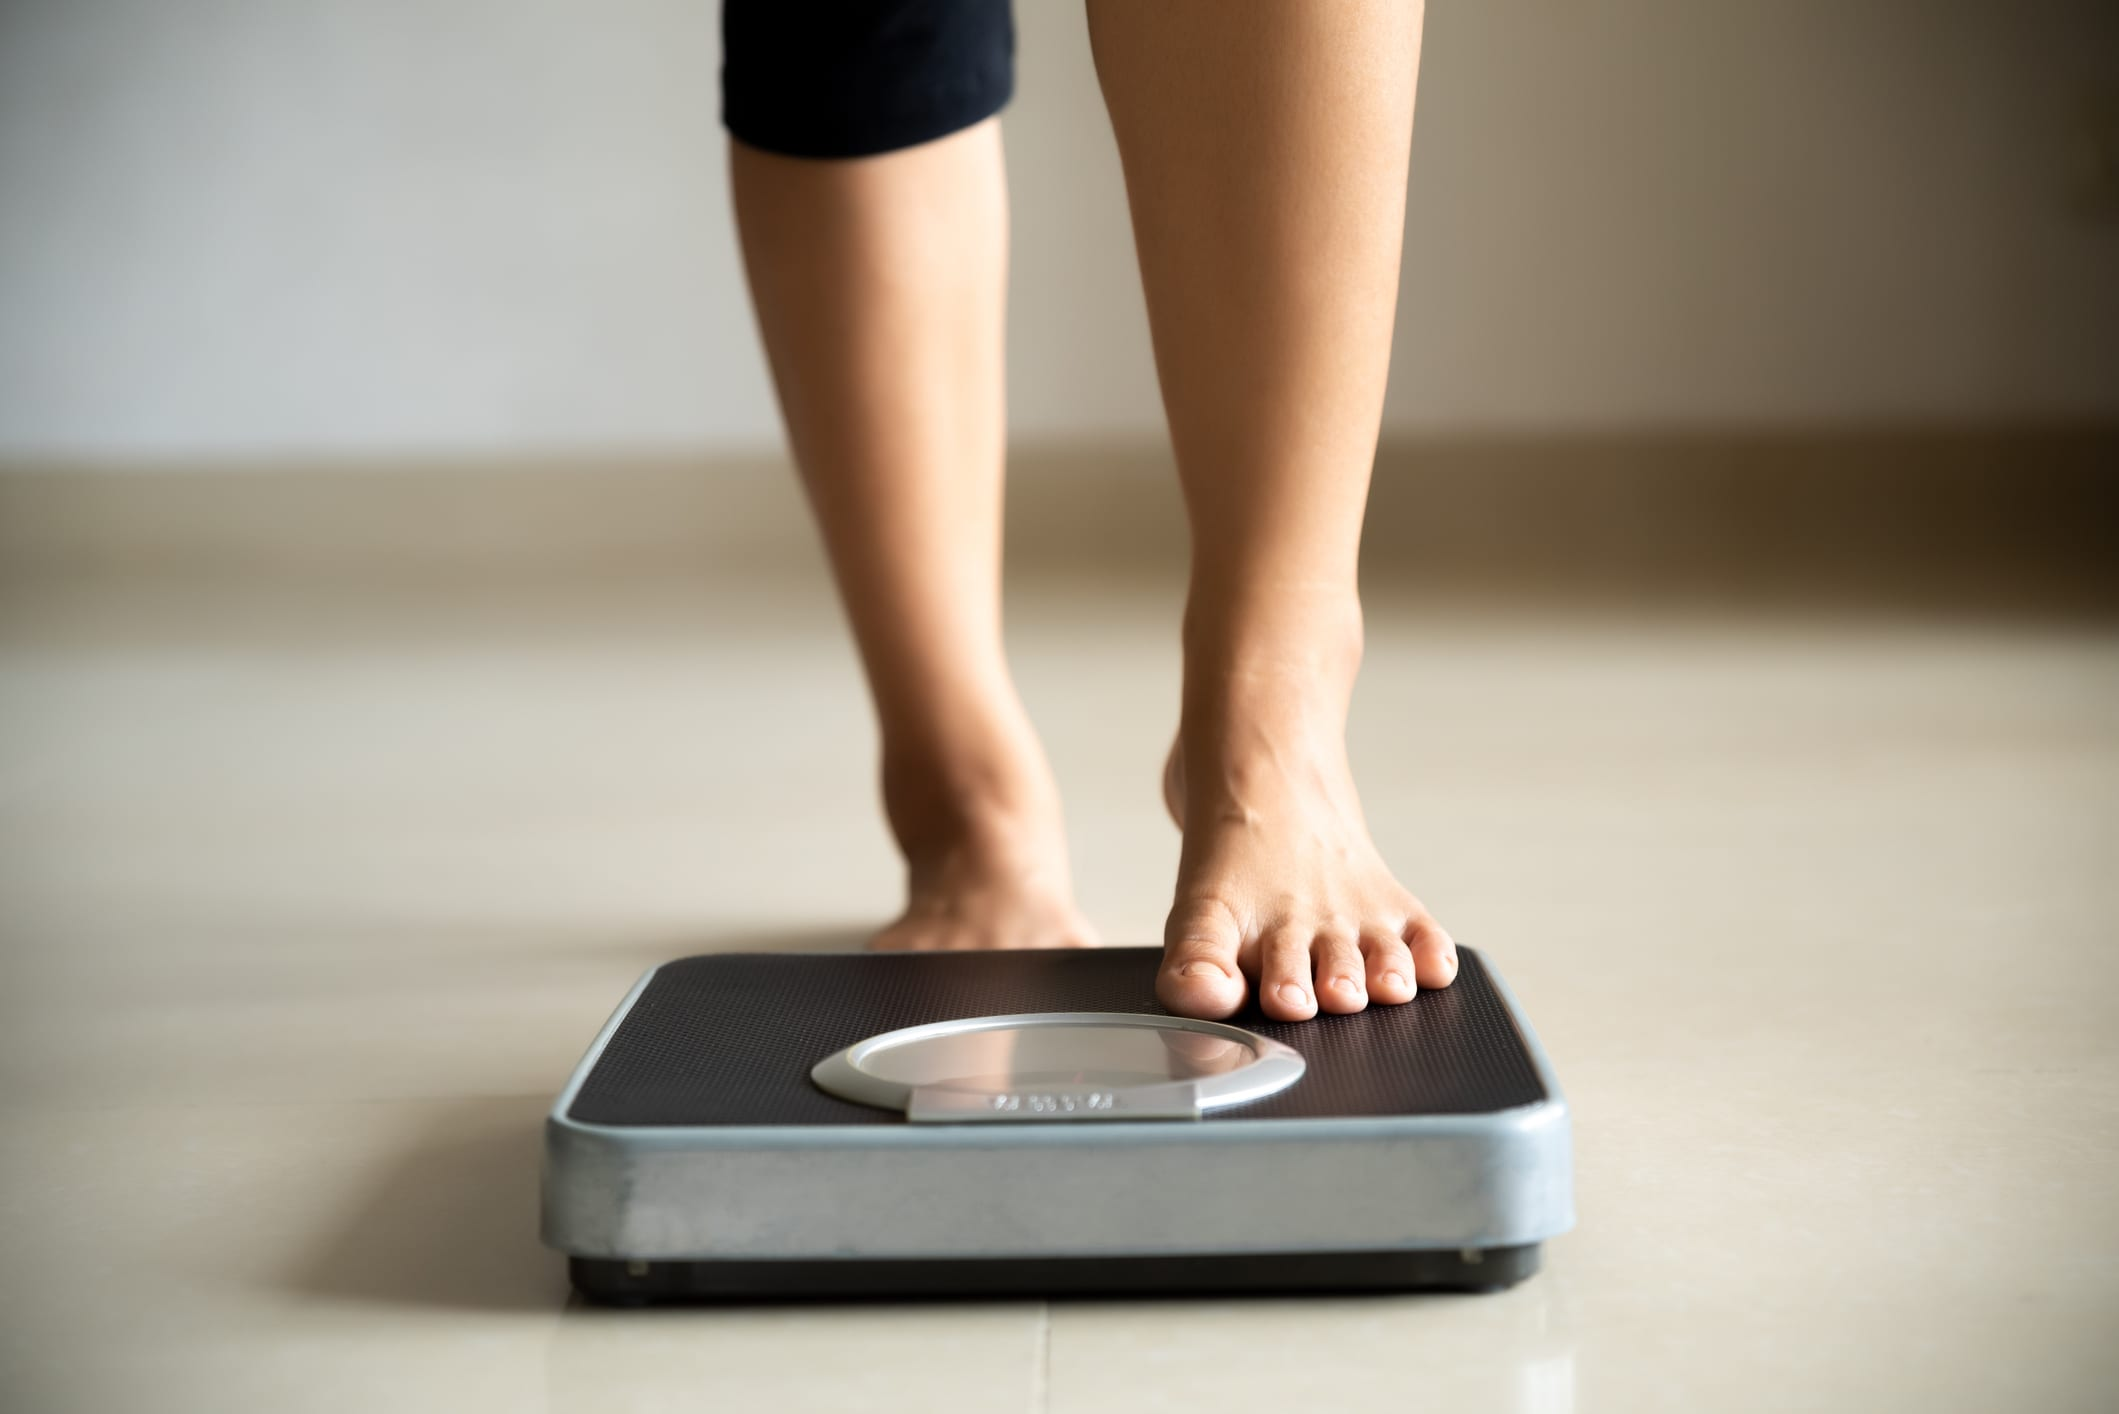 Female leg stepping on weigh scales.